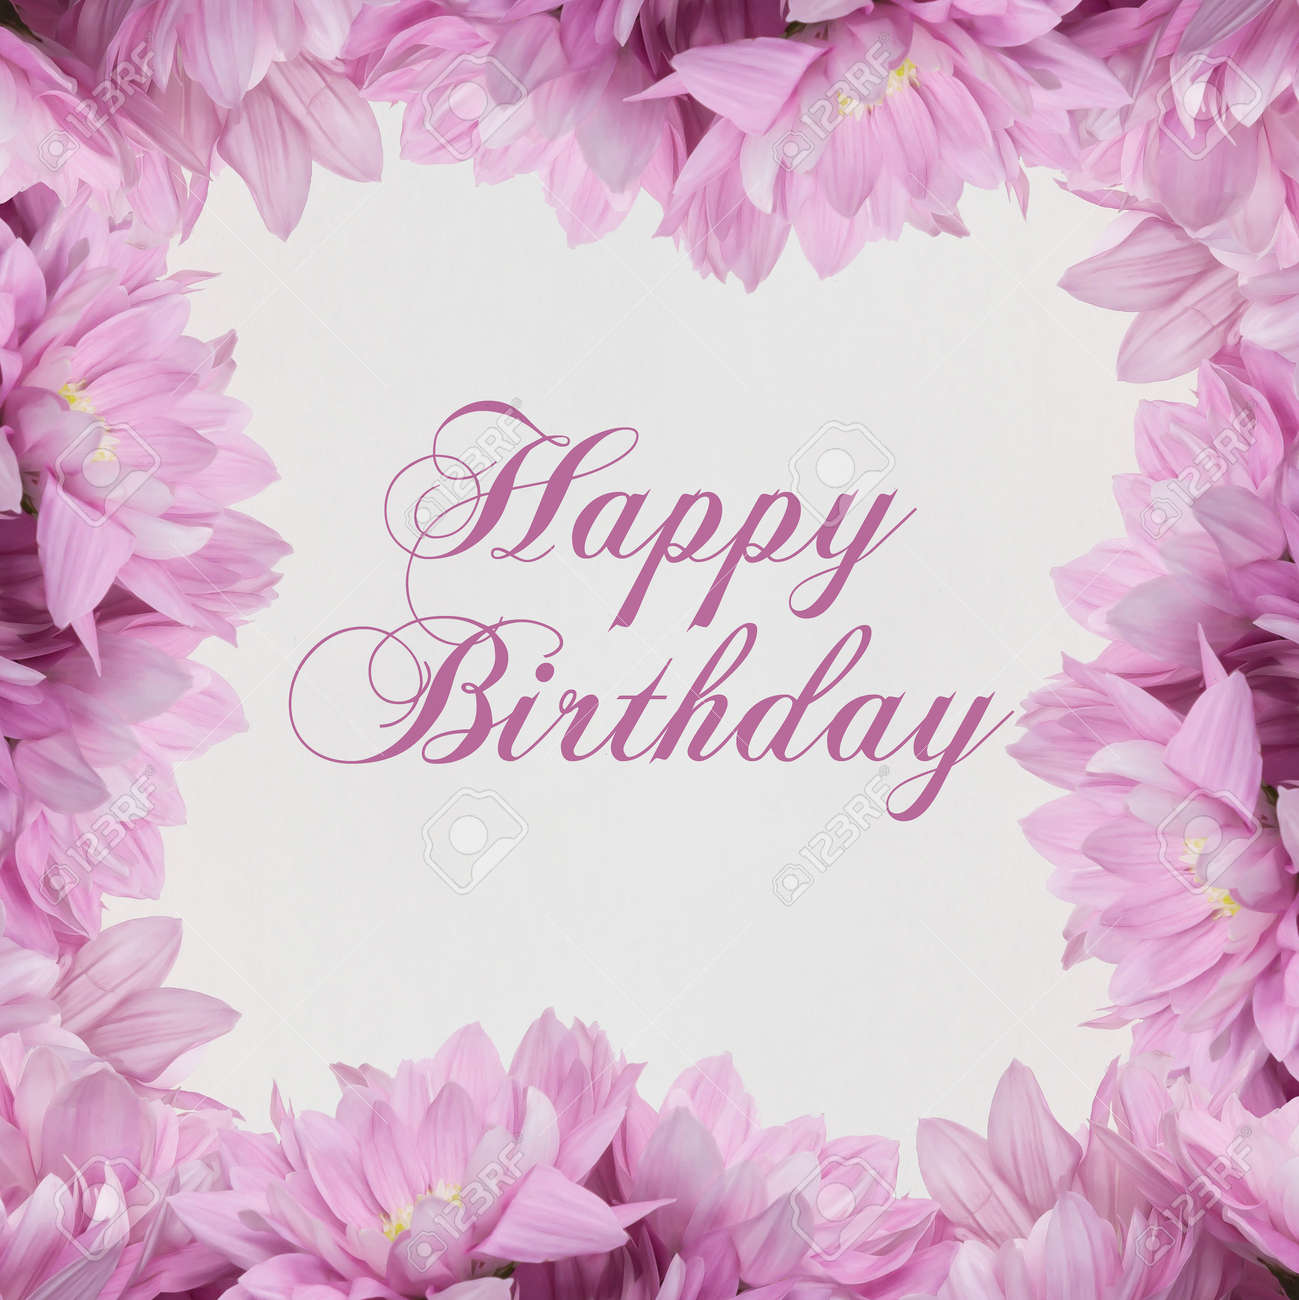 Happy Birthday Flowers On White Background Stock Photo